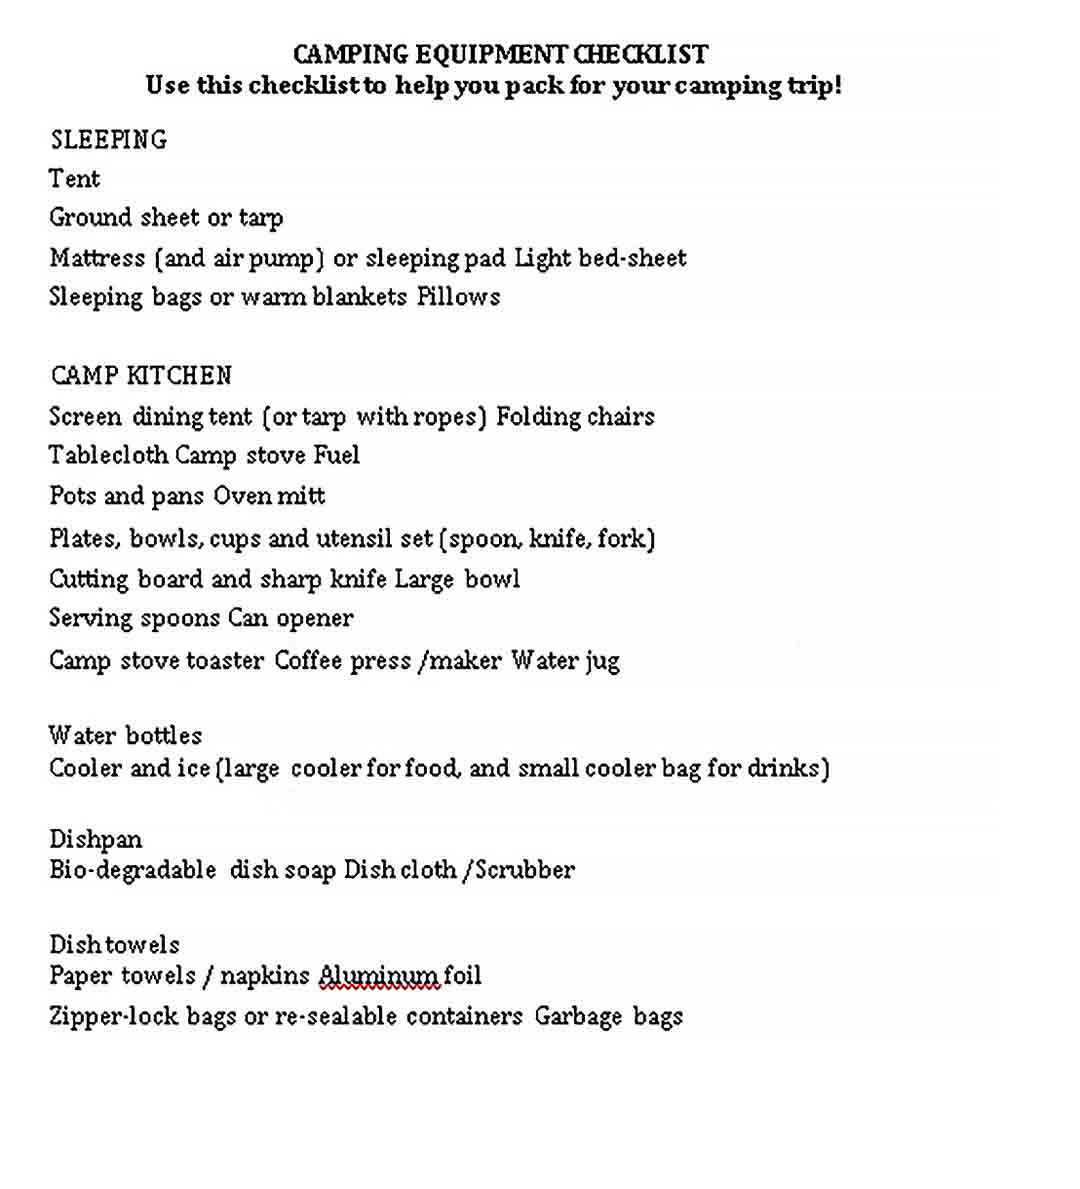 Template Camping Equipment Checklist